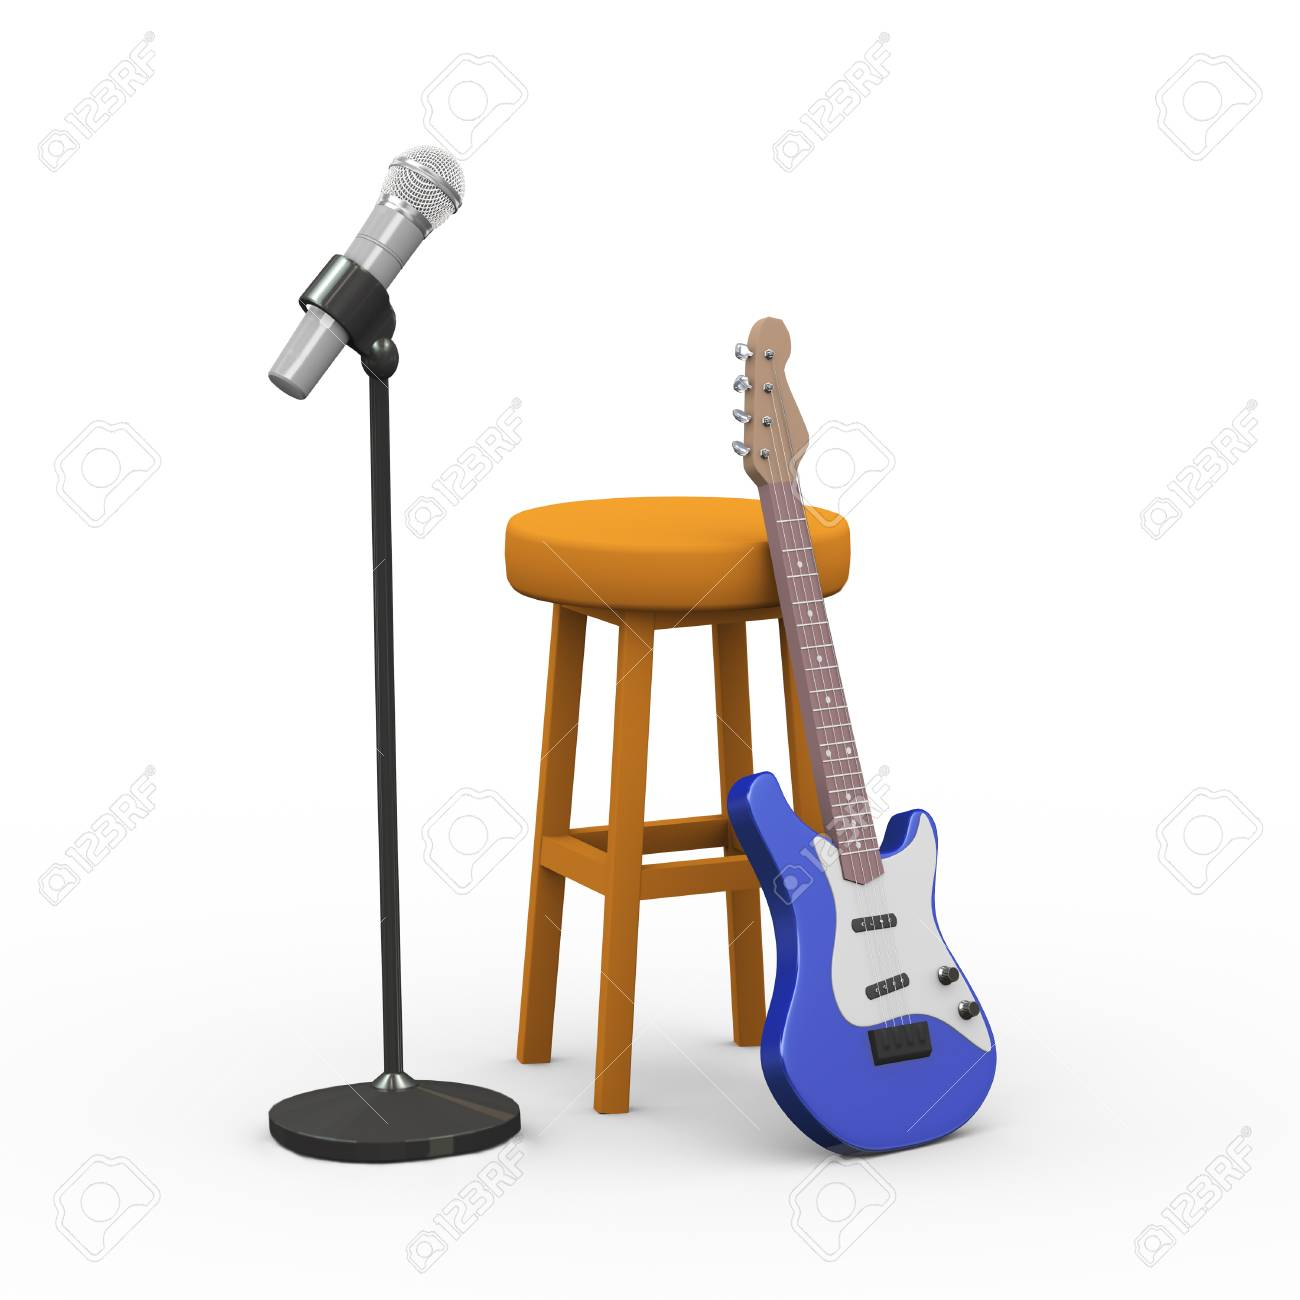 Groovy 3D Rendering Of Electric Guitar Wooden Stool And Microphone Ocoug Best Dining Table And Chair Ideas Images Ocougorg